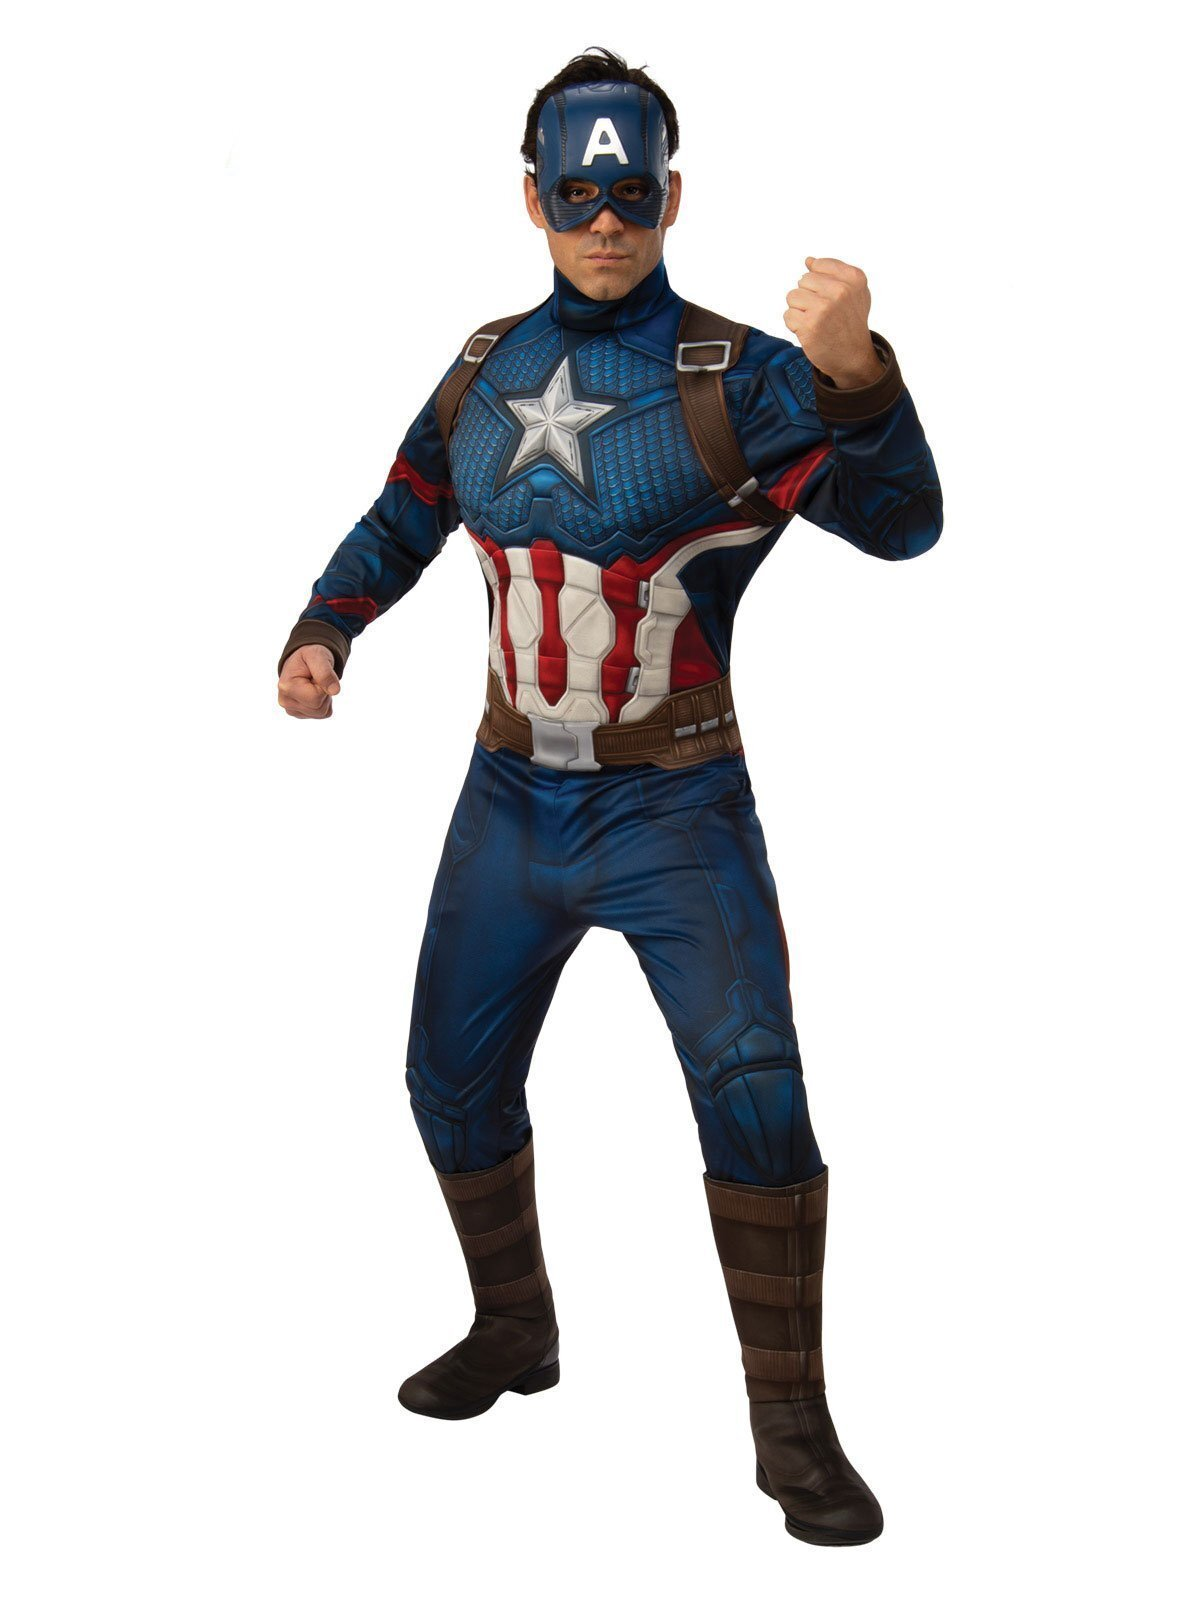 Captain America Costume - Buy Online Only